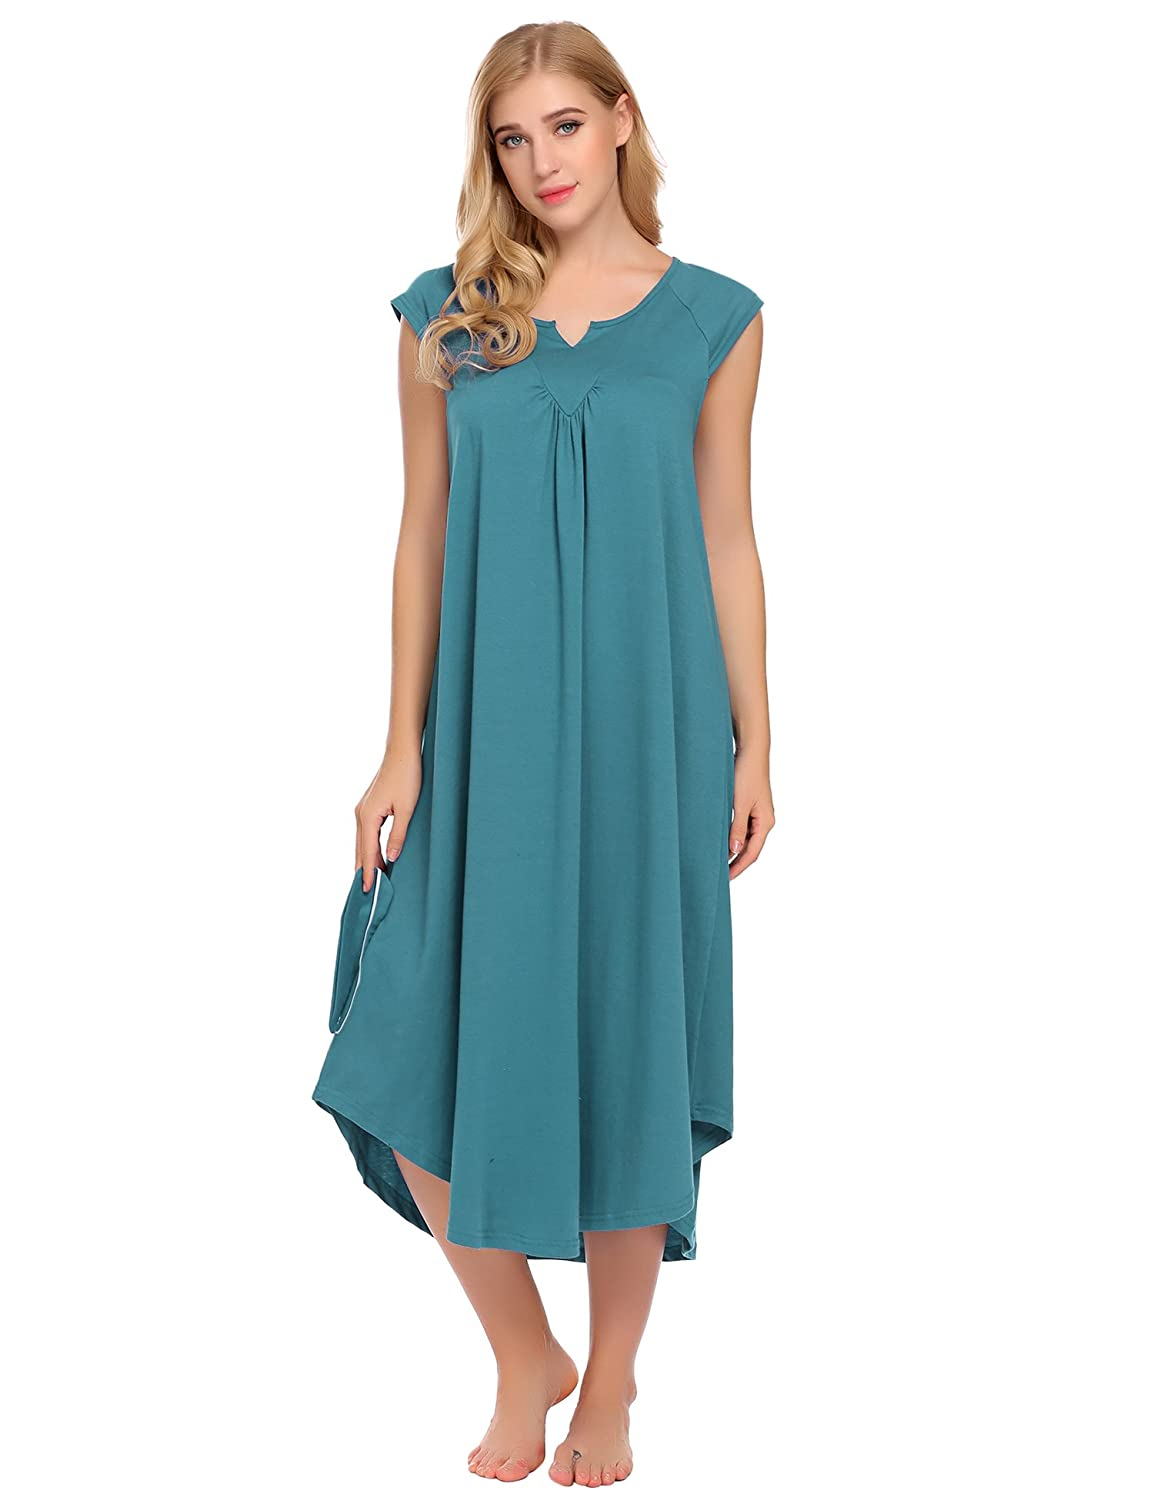 Peacock bluee Asatr Women's Nightgown Dress Long Cotton Nightdress Loose Cap Short Sleeve Sleepwear Maxi Dress SXXL